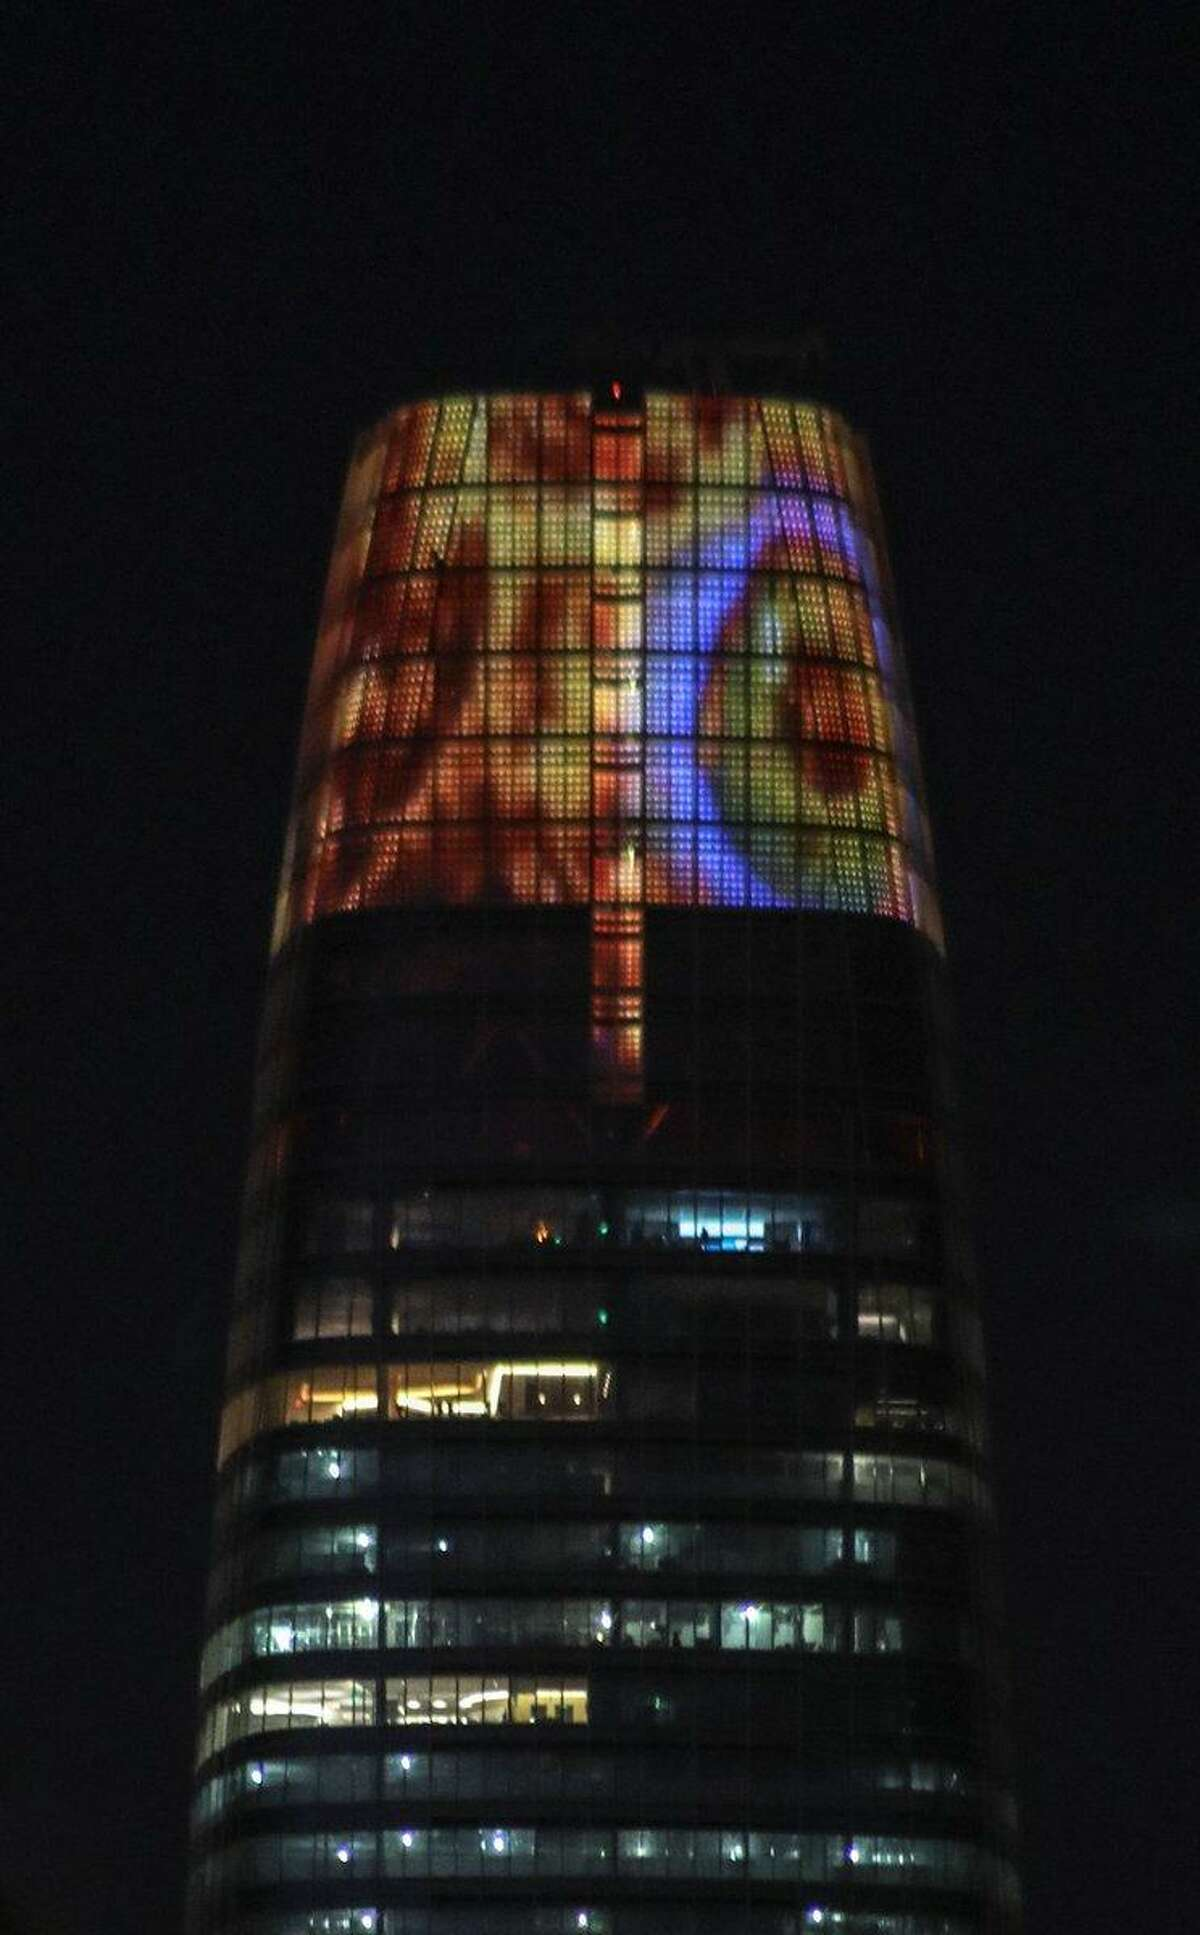 Salesforce Tower's crown lights up to reflect the giant fiery Eye of Sauron after a petition to transform the installation into the fantasy antagonist from J. R. R. Tolkien novels garnered more than 11,000 signatures on Change.org.